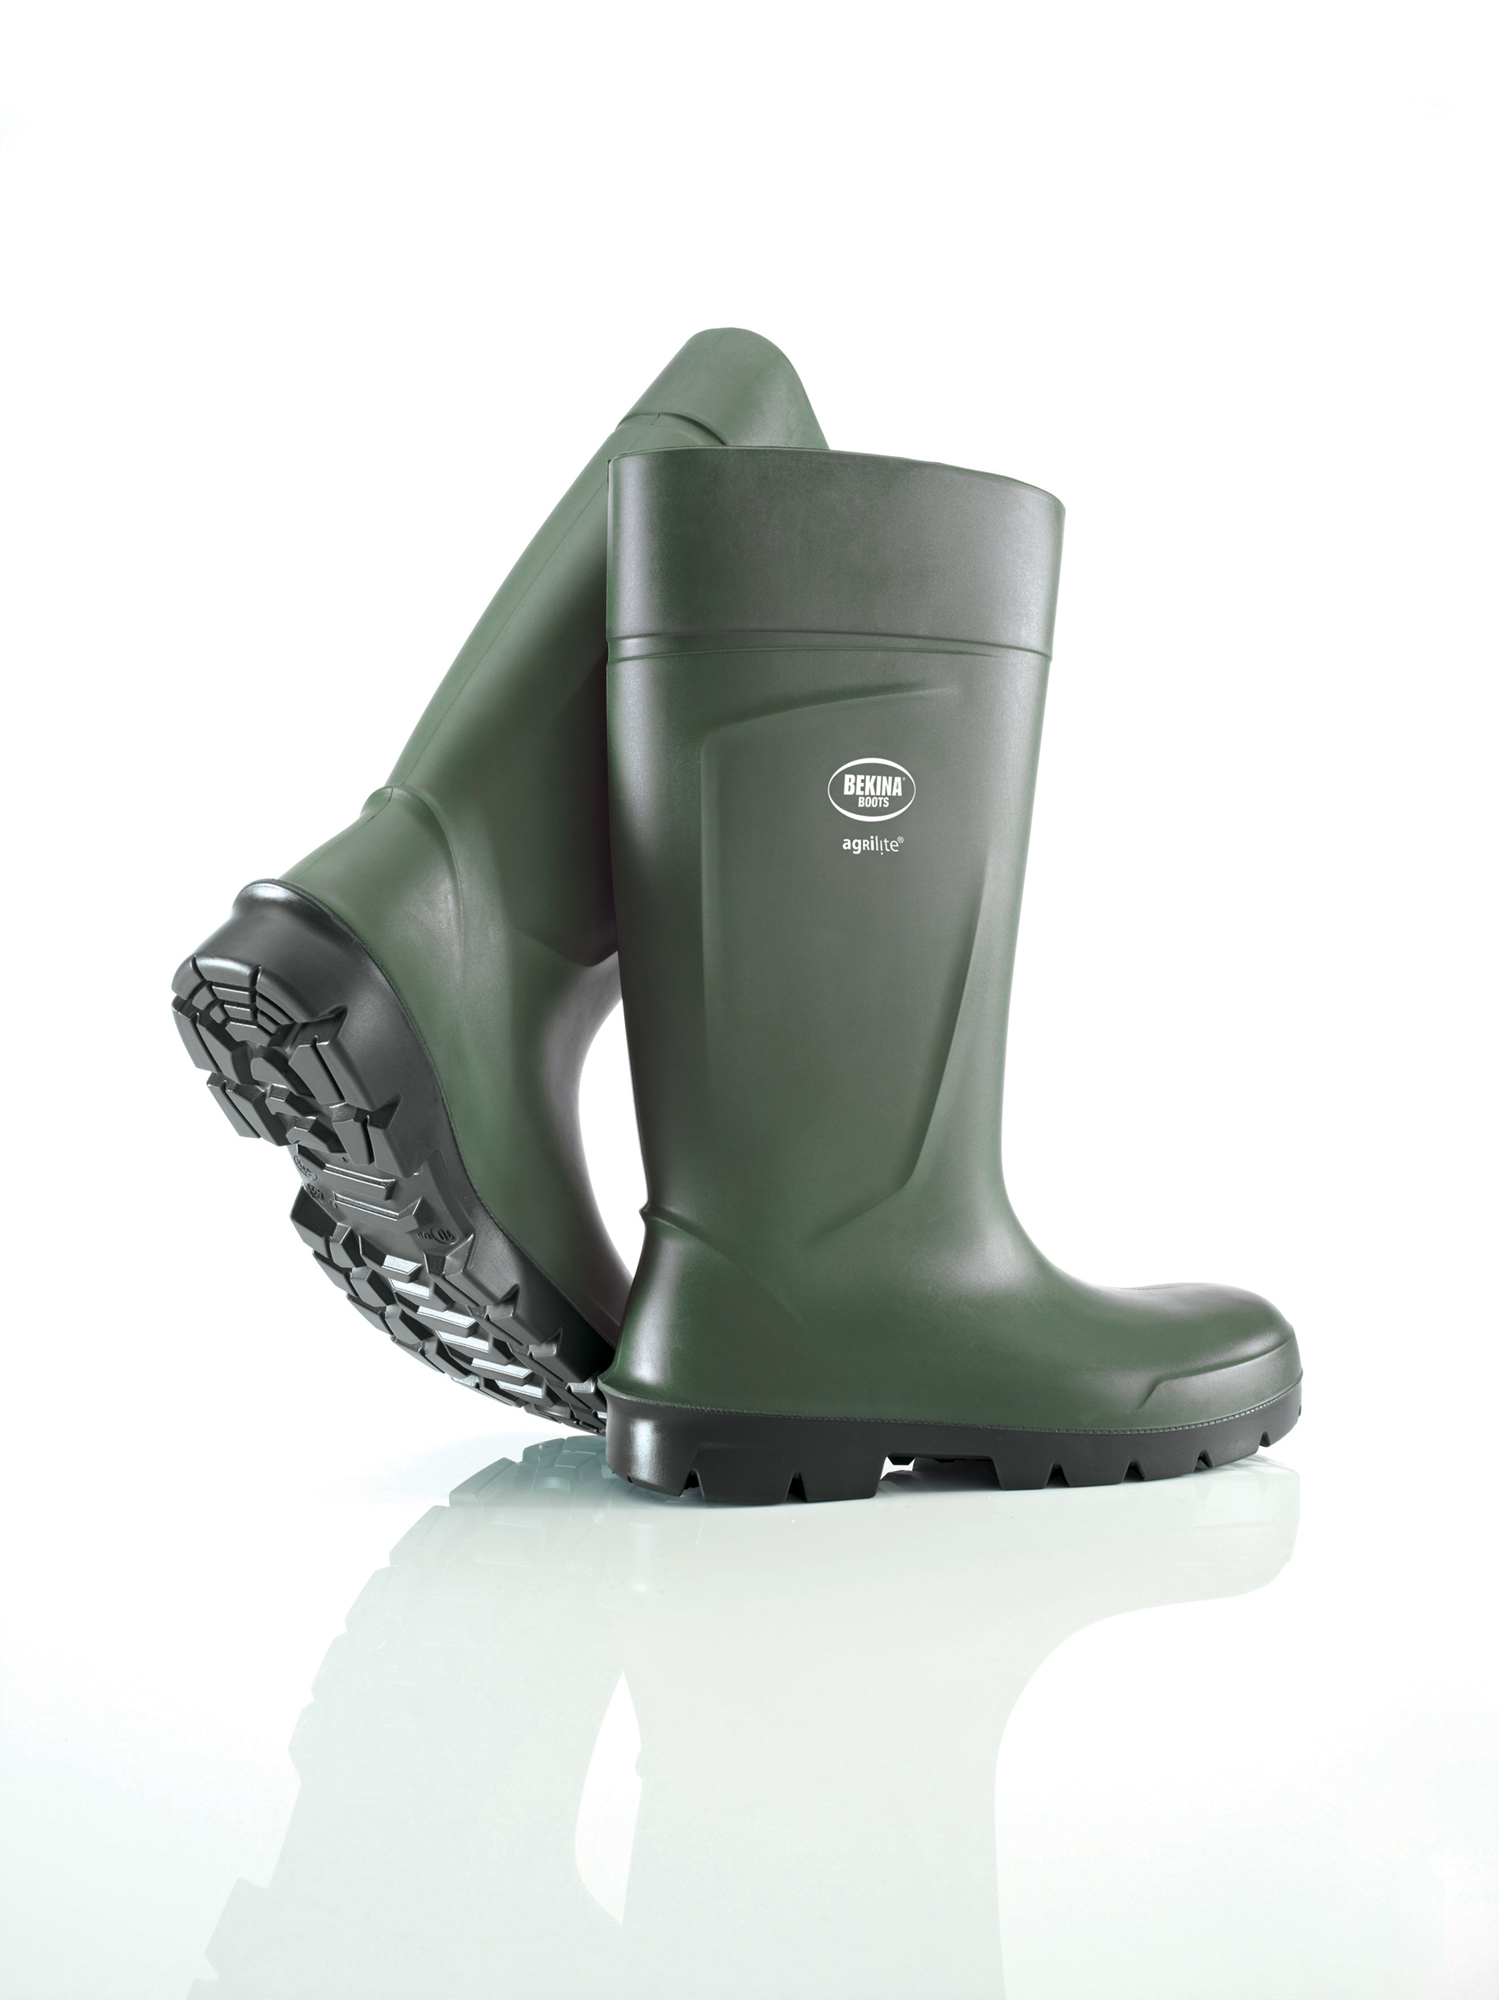 Bekina Agrilite rubber boot (PU) with steel toe cap, olive green, size 44